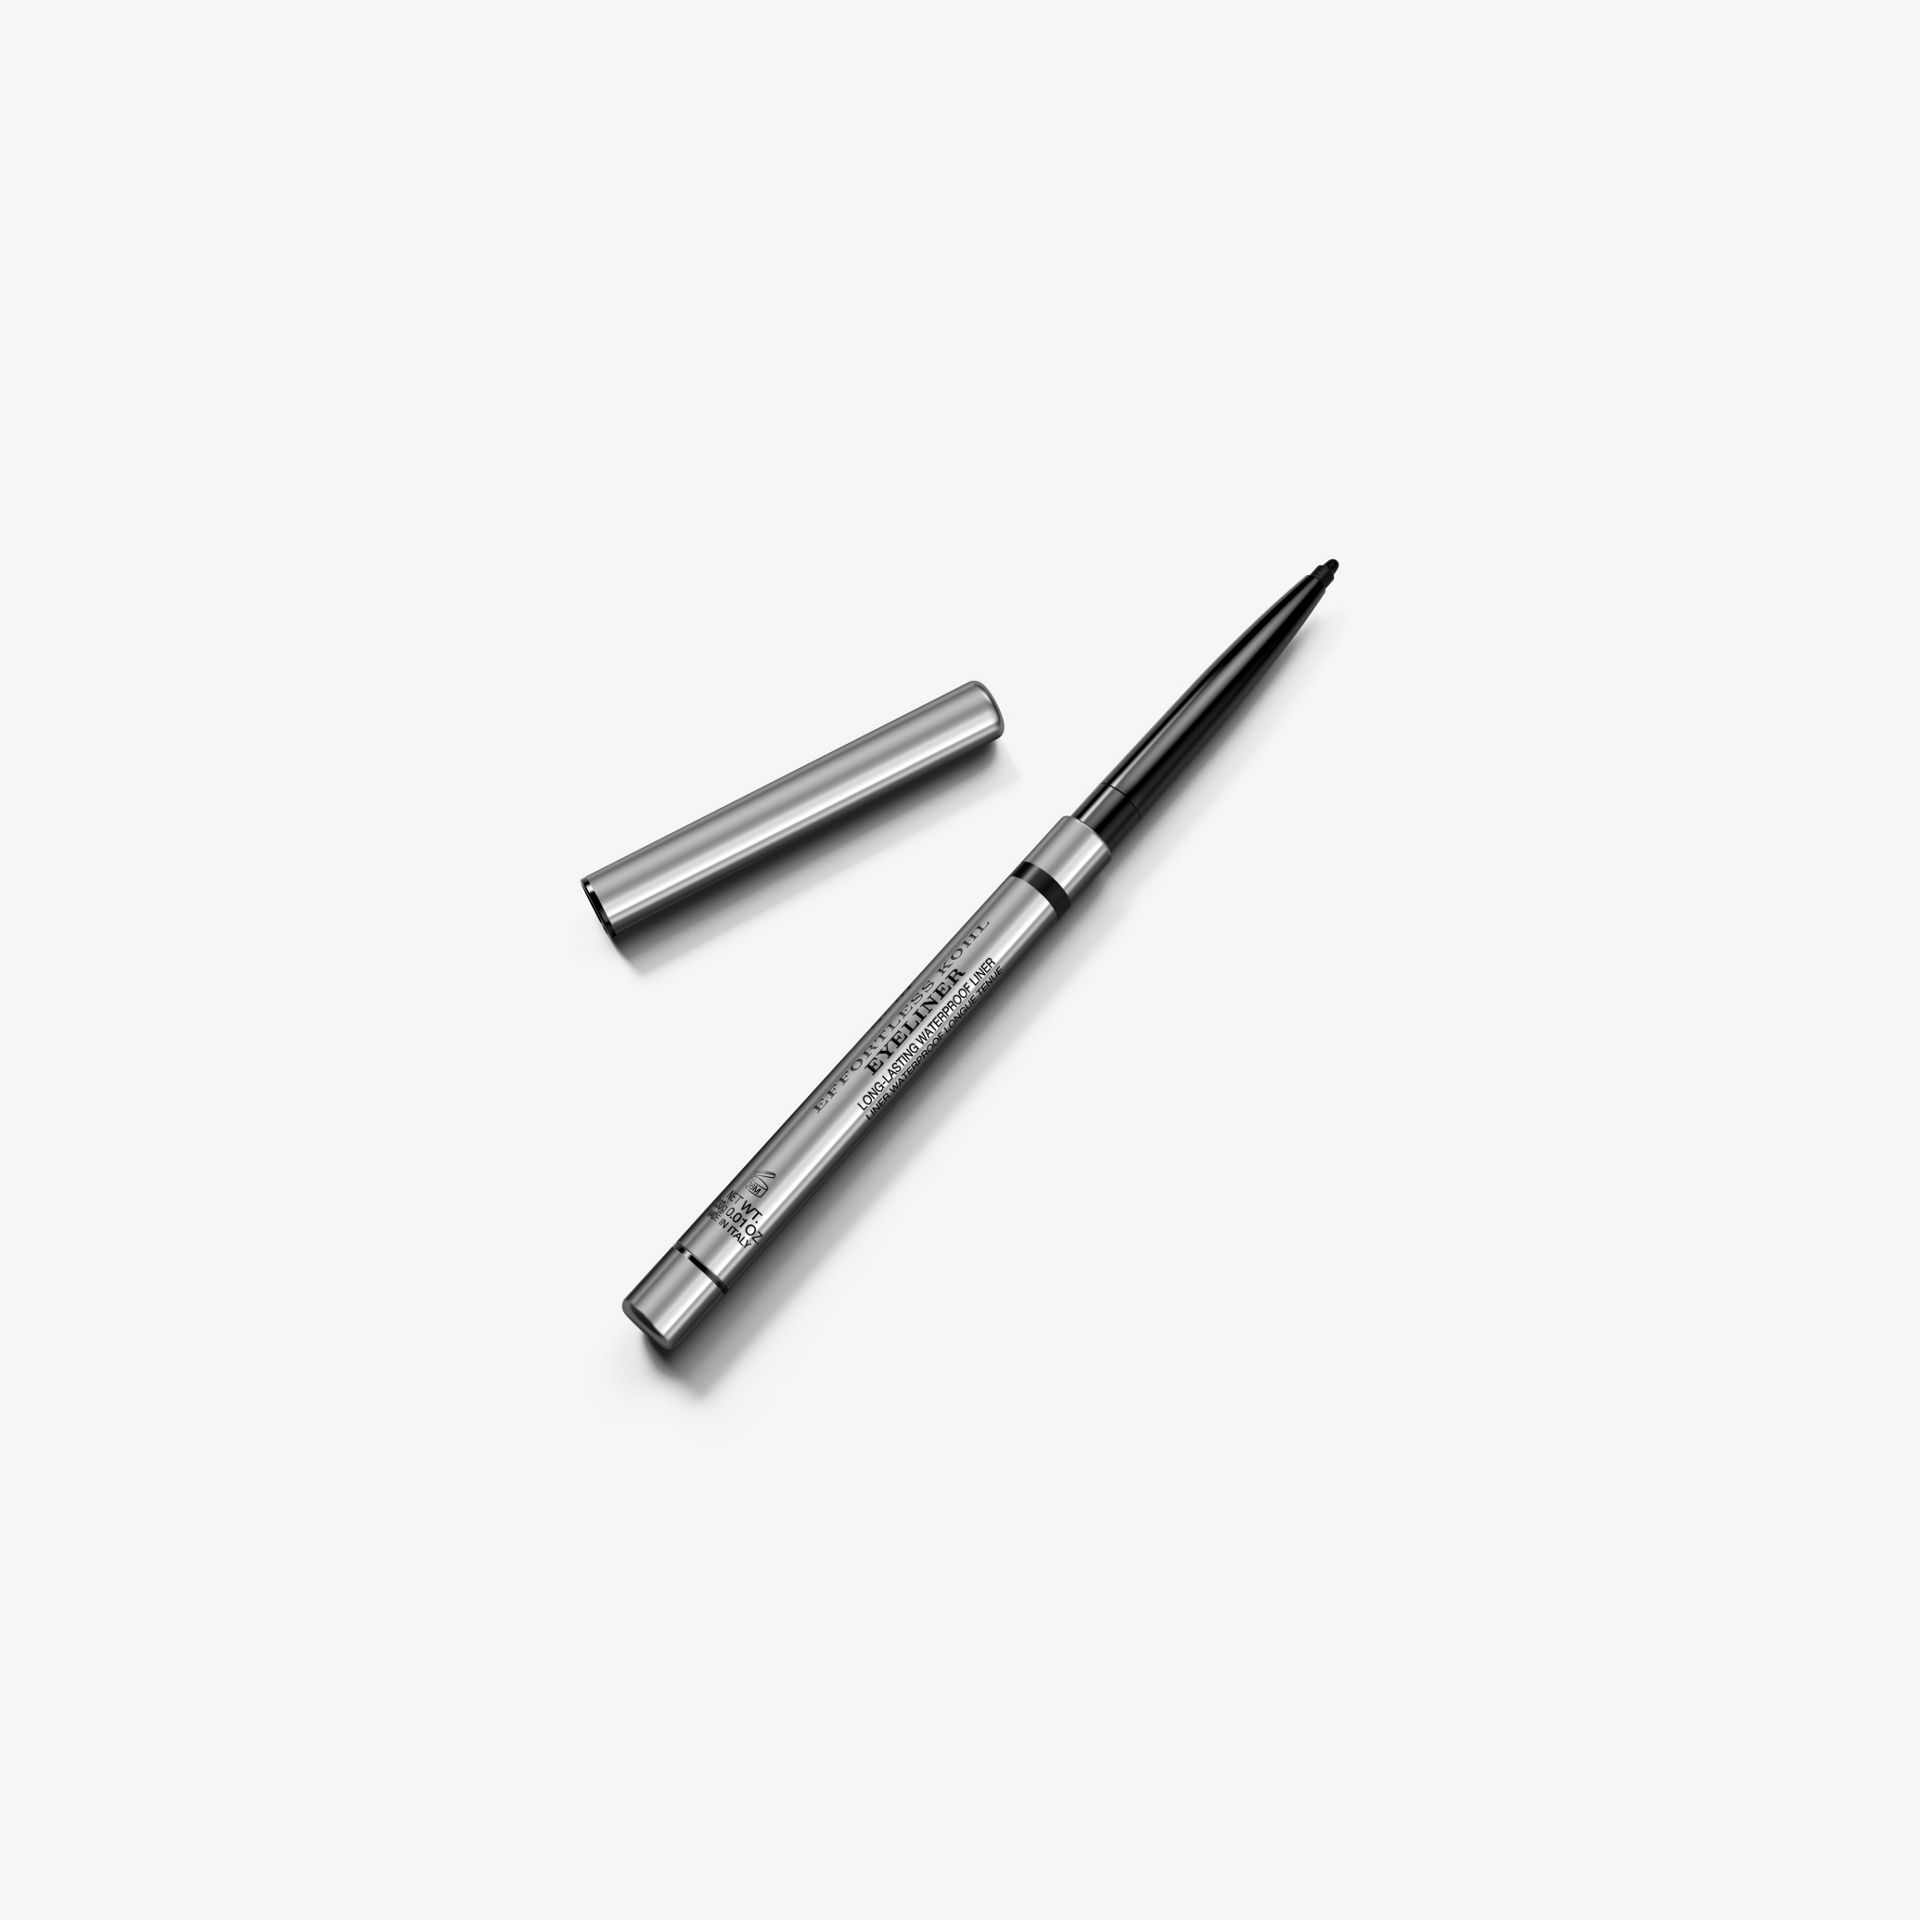 Контурный карандаш Effortless Kohl Eyeliner, Jet Black № 01 - изображение 1